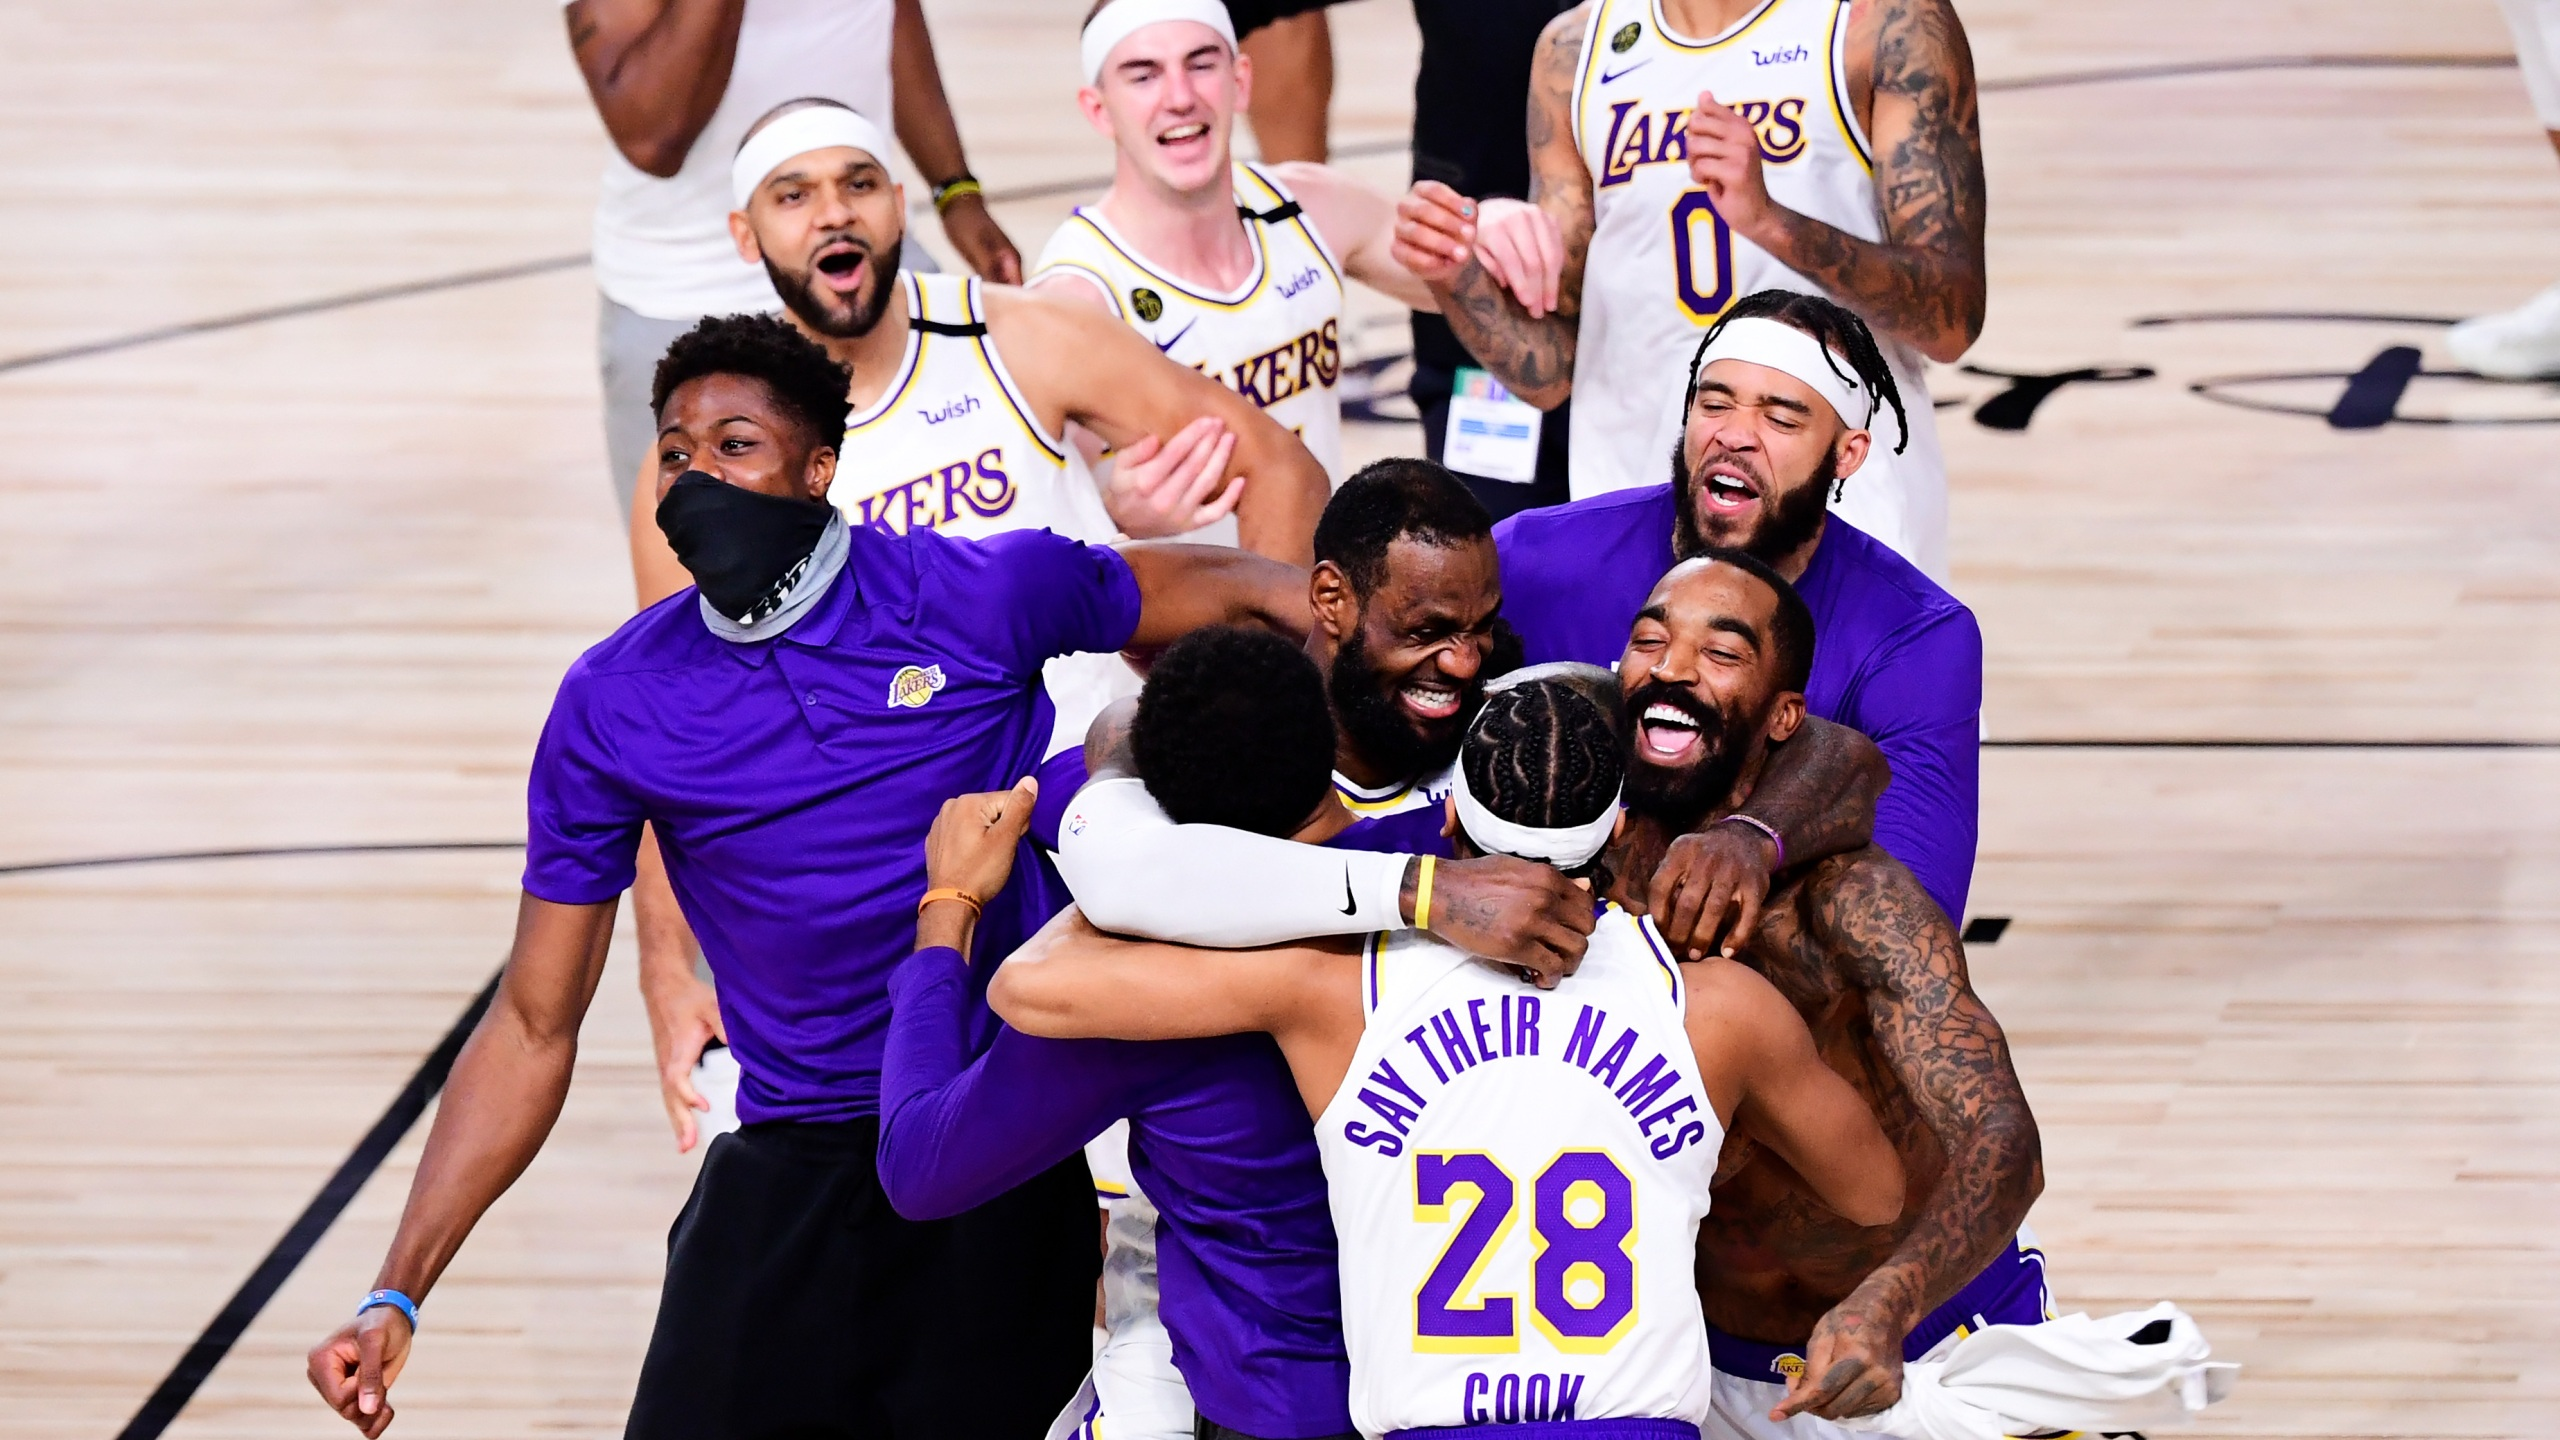 No L.A. victory parade planned yet to celebrate Lakers win amid